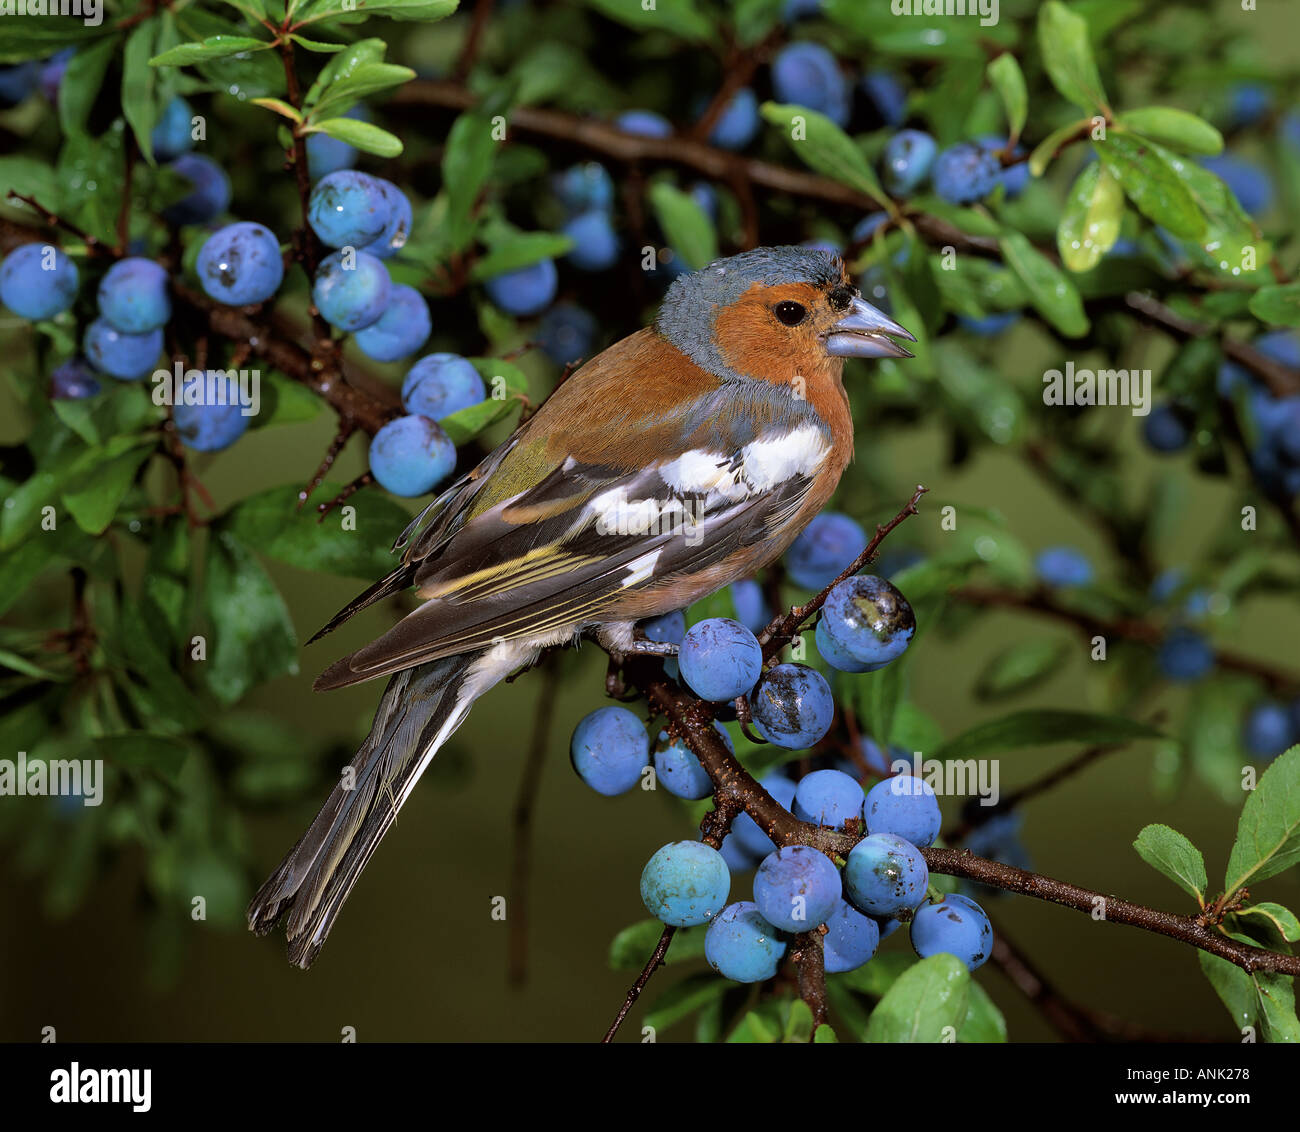 chaffinch on twig with berries / Fringilla coelebs - Stock Image